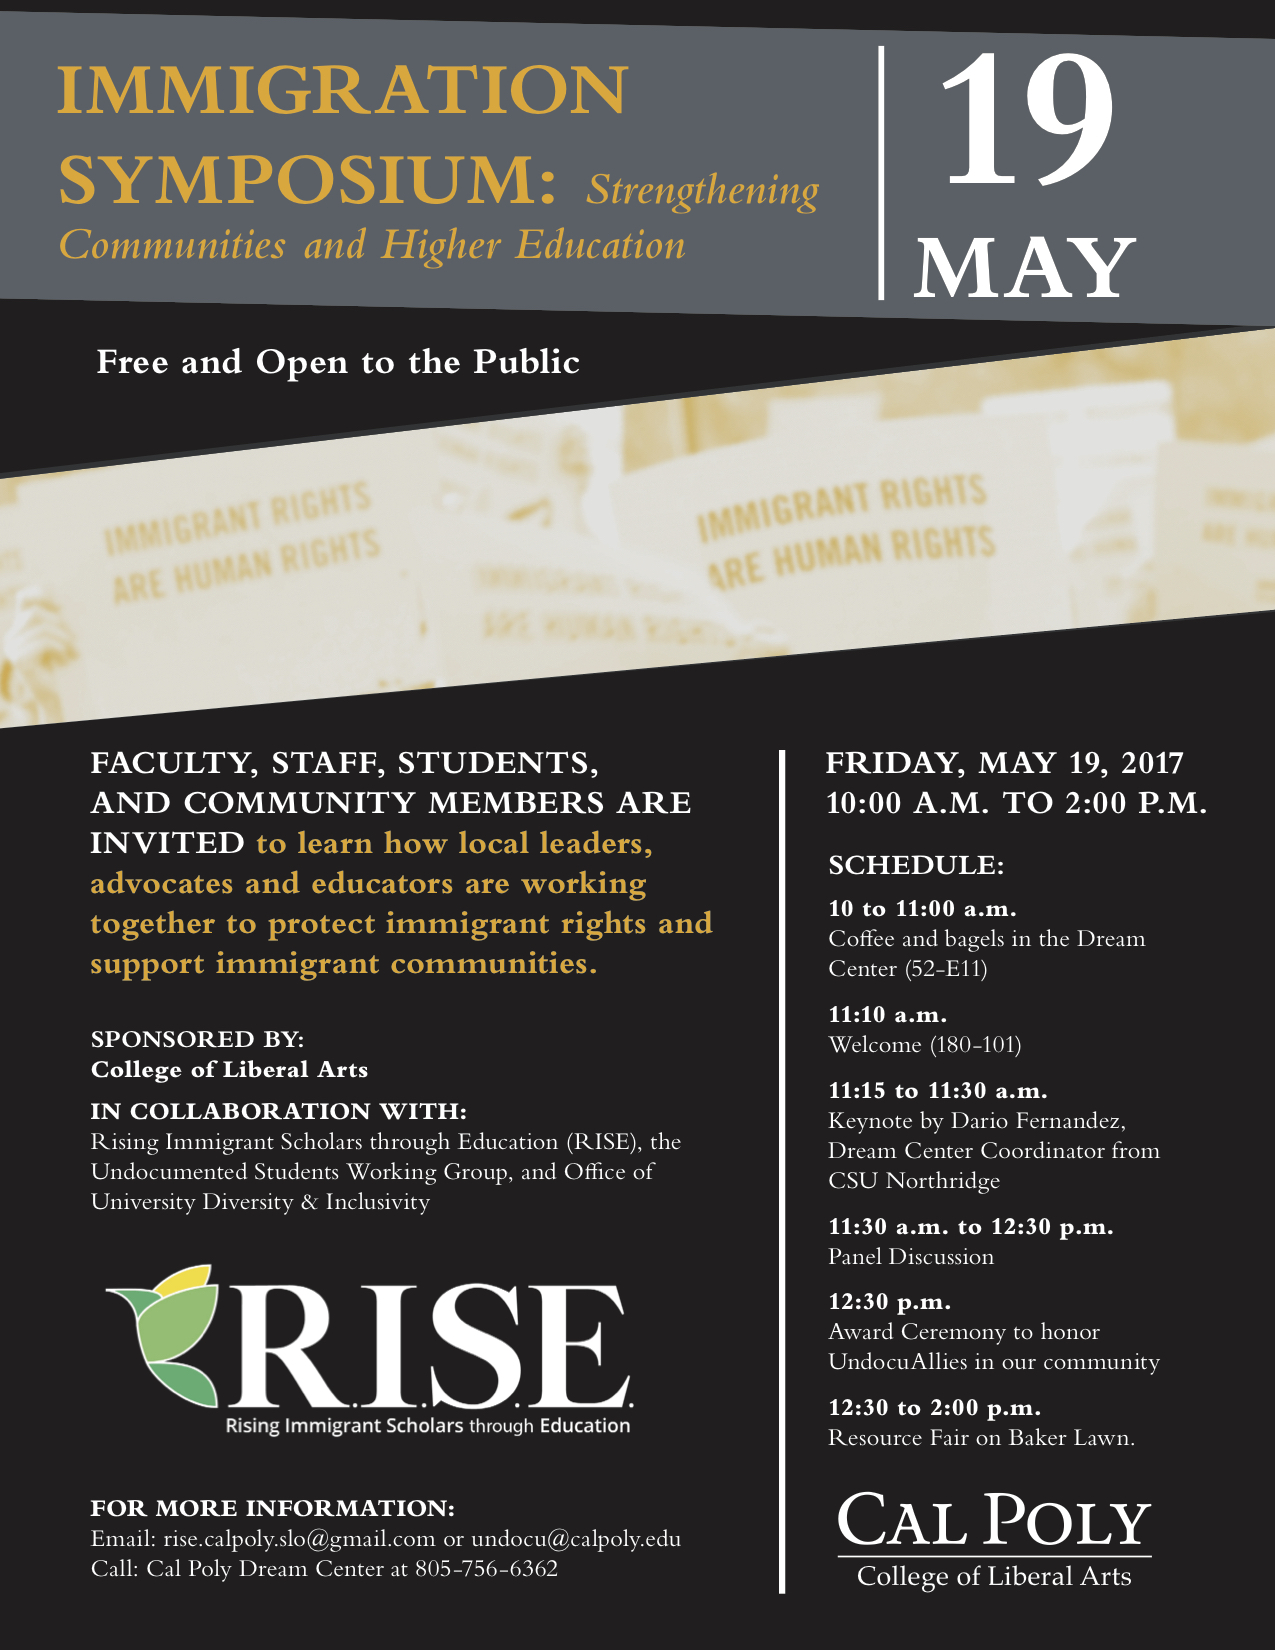 Immigration Symposium: Strengthening Communities and Higher Education @ Cal Poly | San Luis Obispo | California | United States